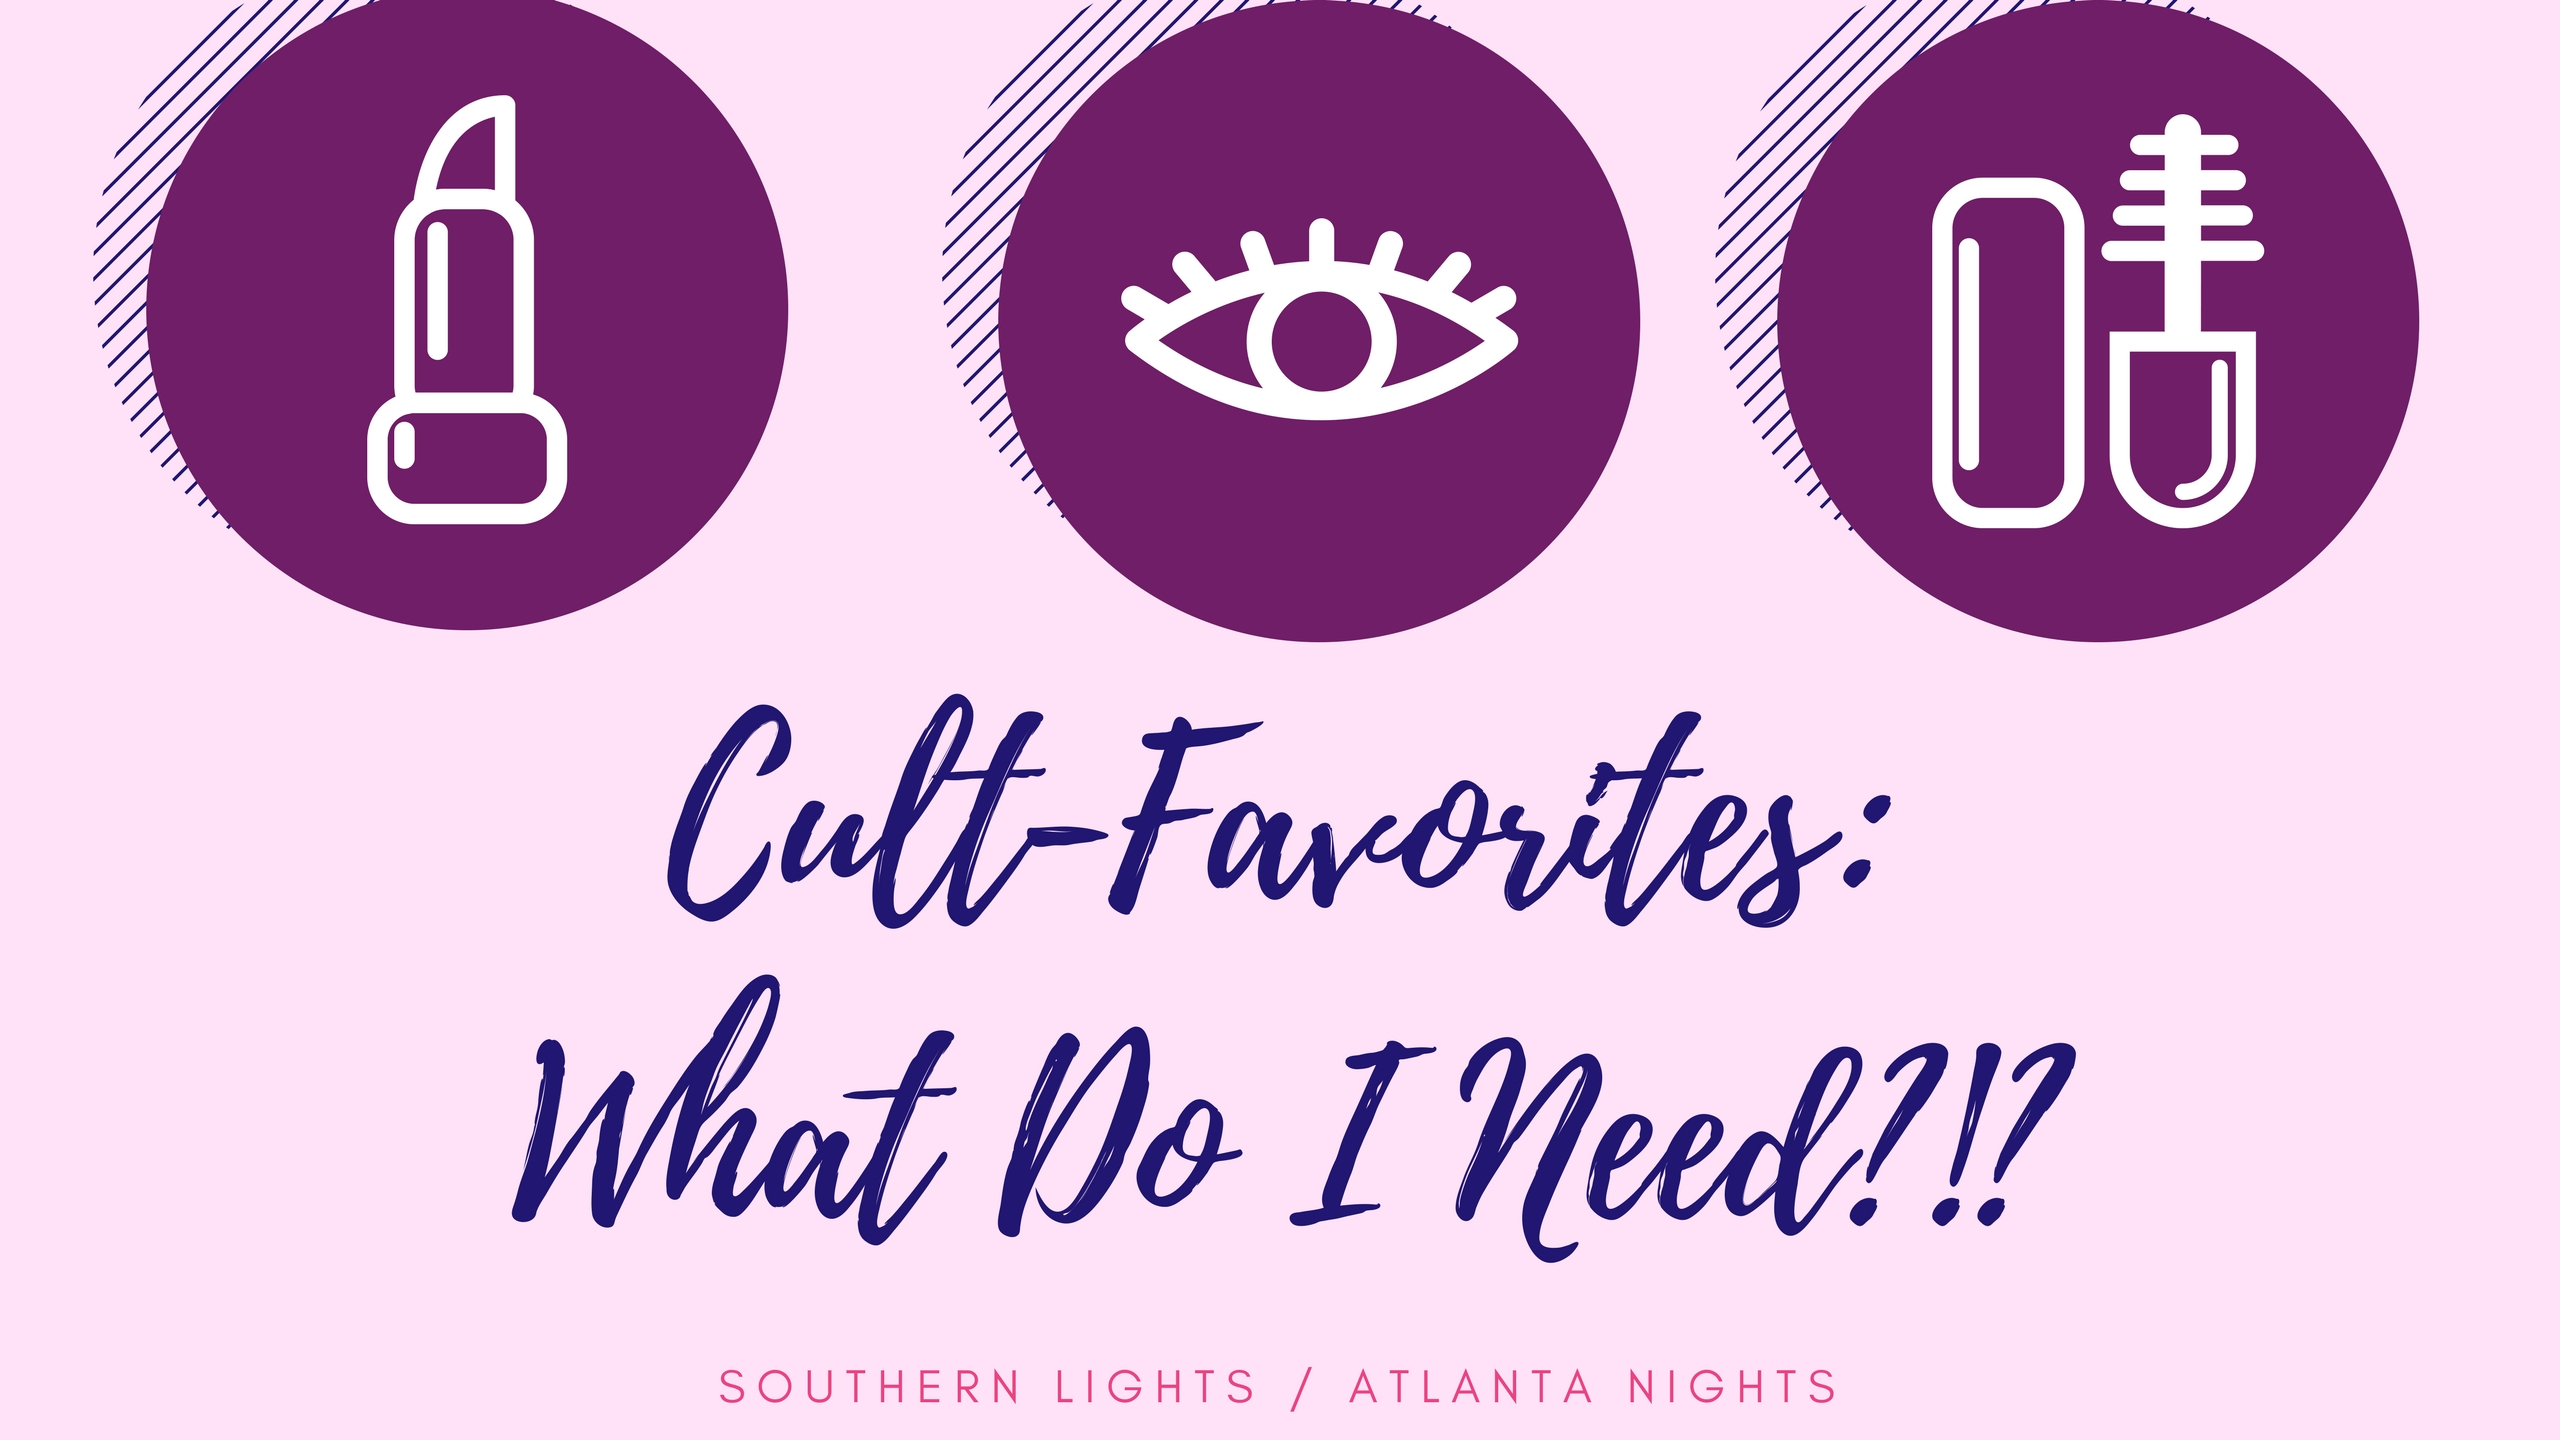 CULT FAVORITES – WHAT DO I NEED?!